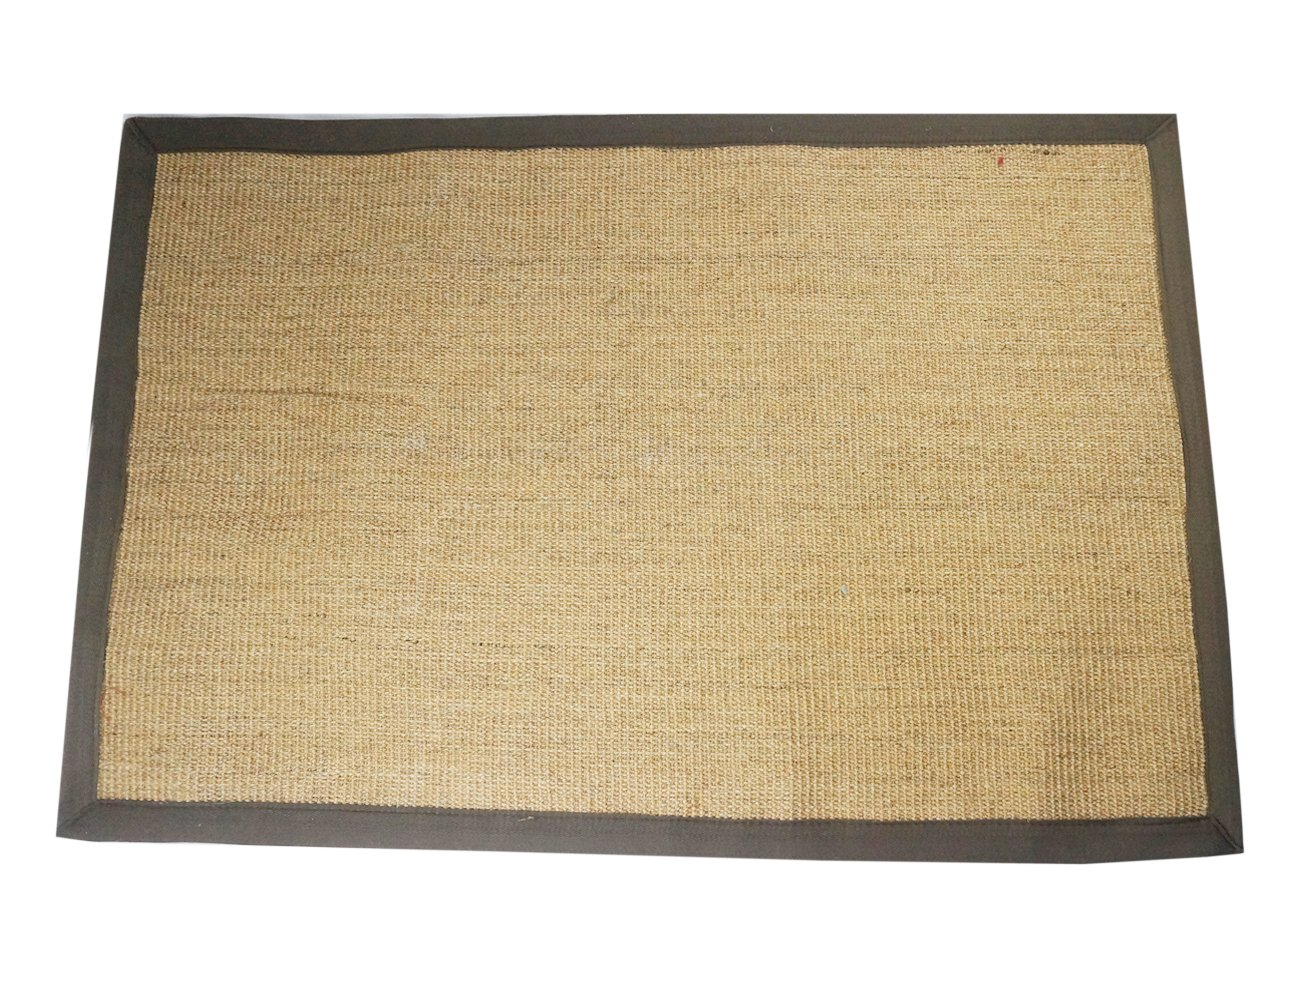 Long Tail Sisal Kitty Scratching Pad | Cat Play Mat | 31.49IN(W) x 47.24IN(L), Light Brown by Long Tail